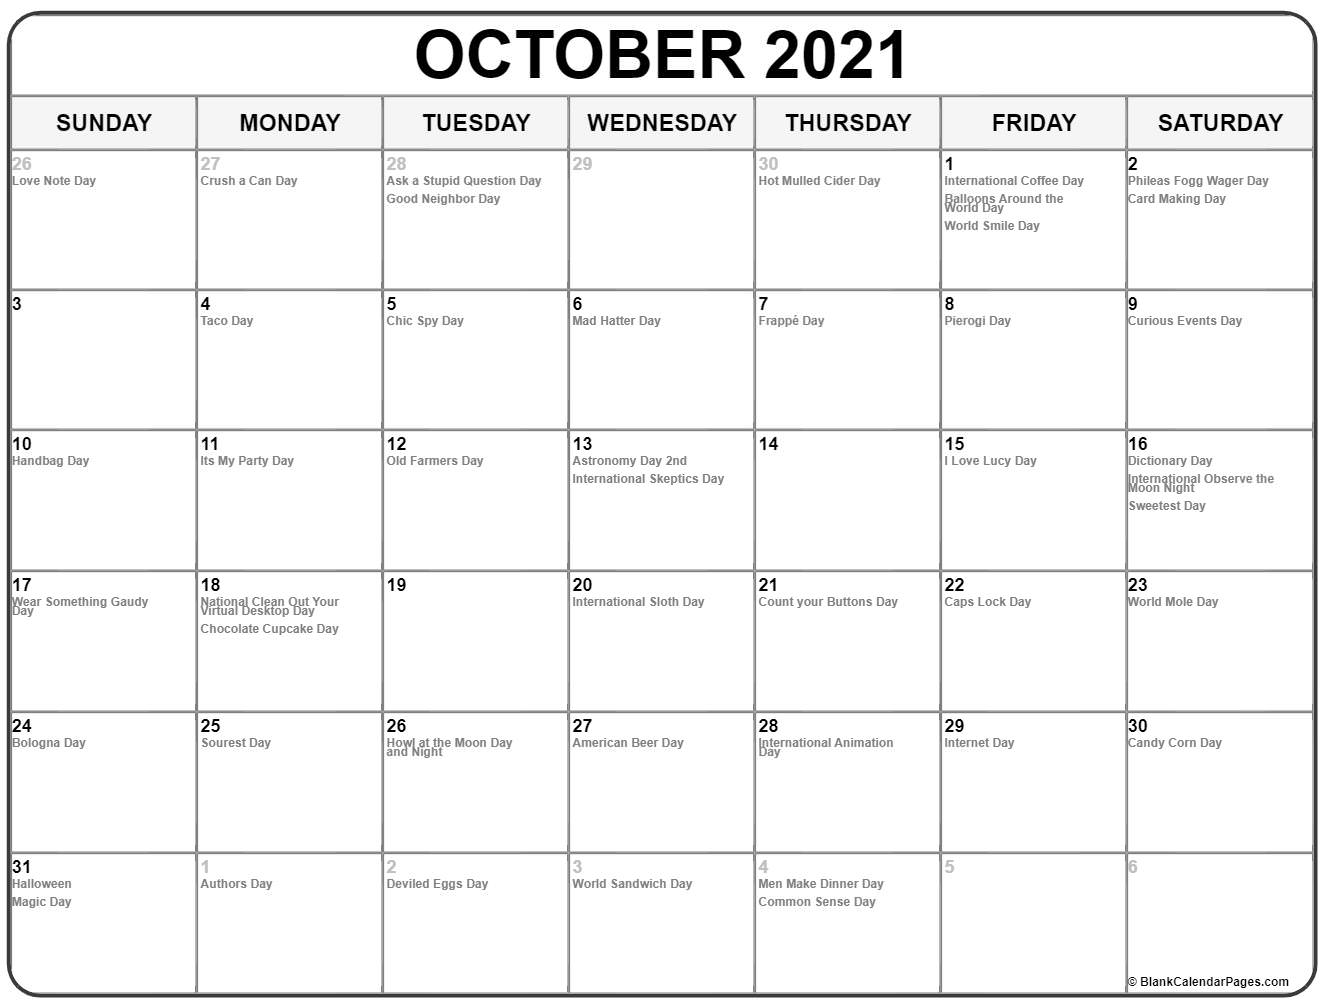 October 2020 whacky holidays calendar